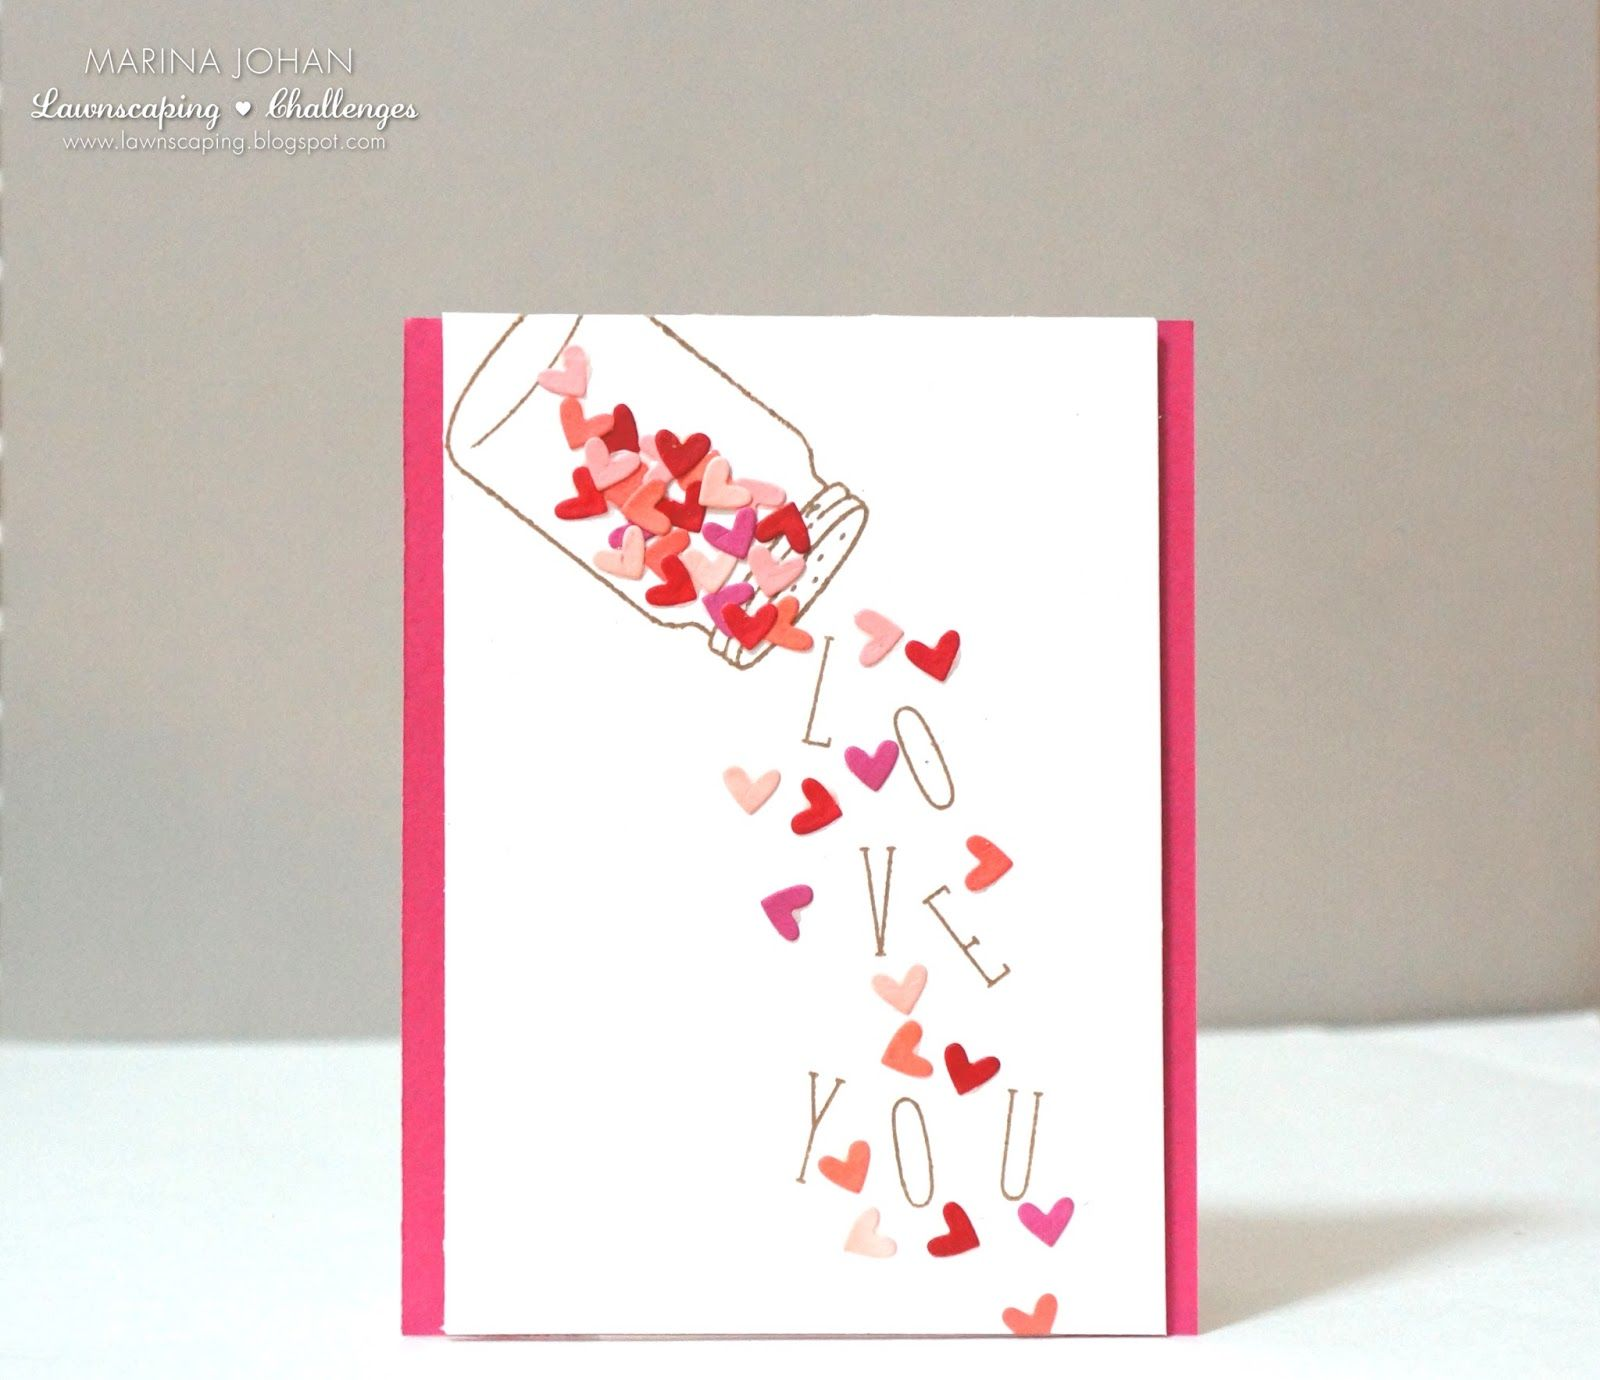 Superb Card Making Ideas Valentines Day Part - 4: DIY Valentines Day Cards - Falling Die Cut Hearts - Easy Handmade Cards For  Him And Her, Kids, Freinds And Teens - Funny, Romantic, Printable Ideas For  ...